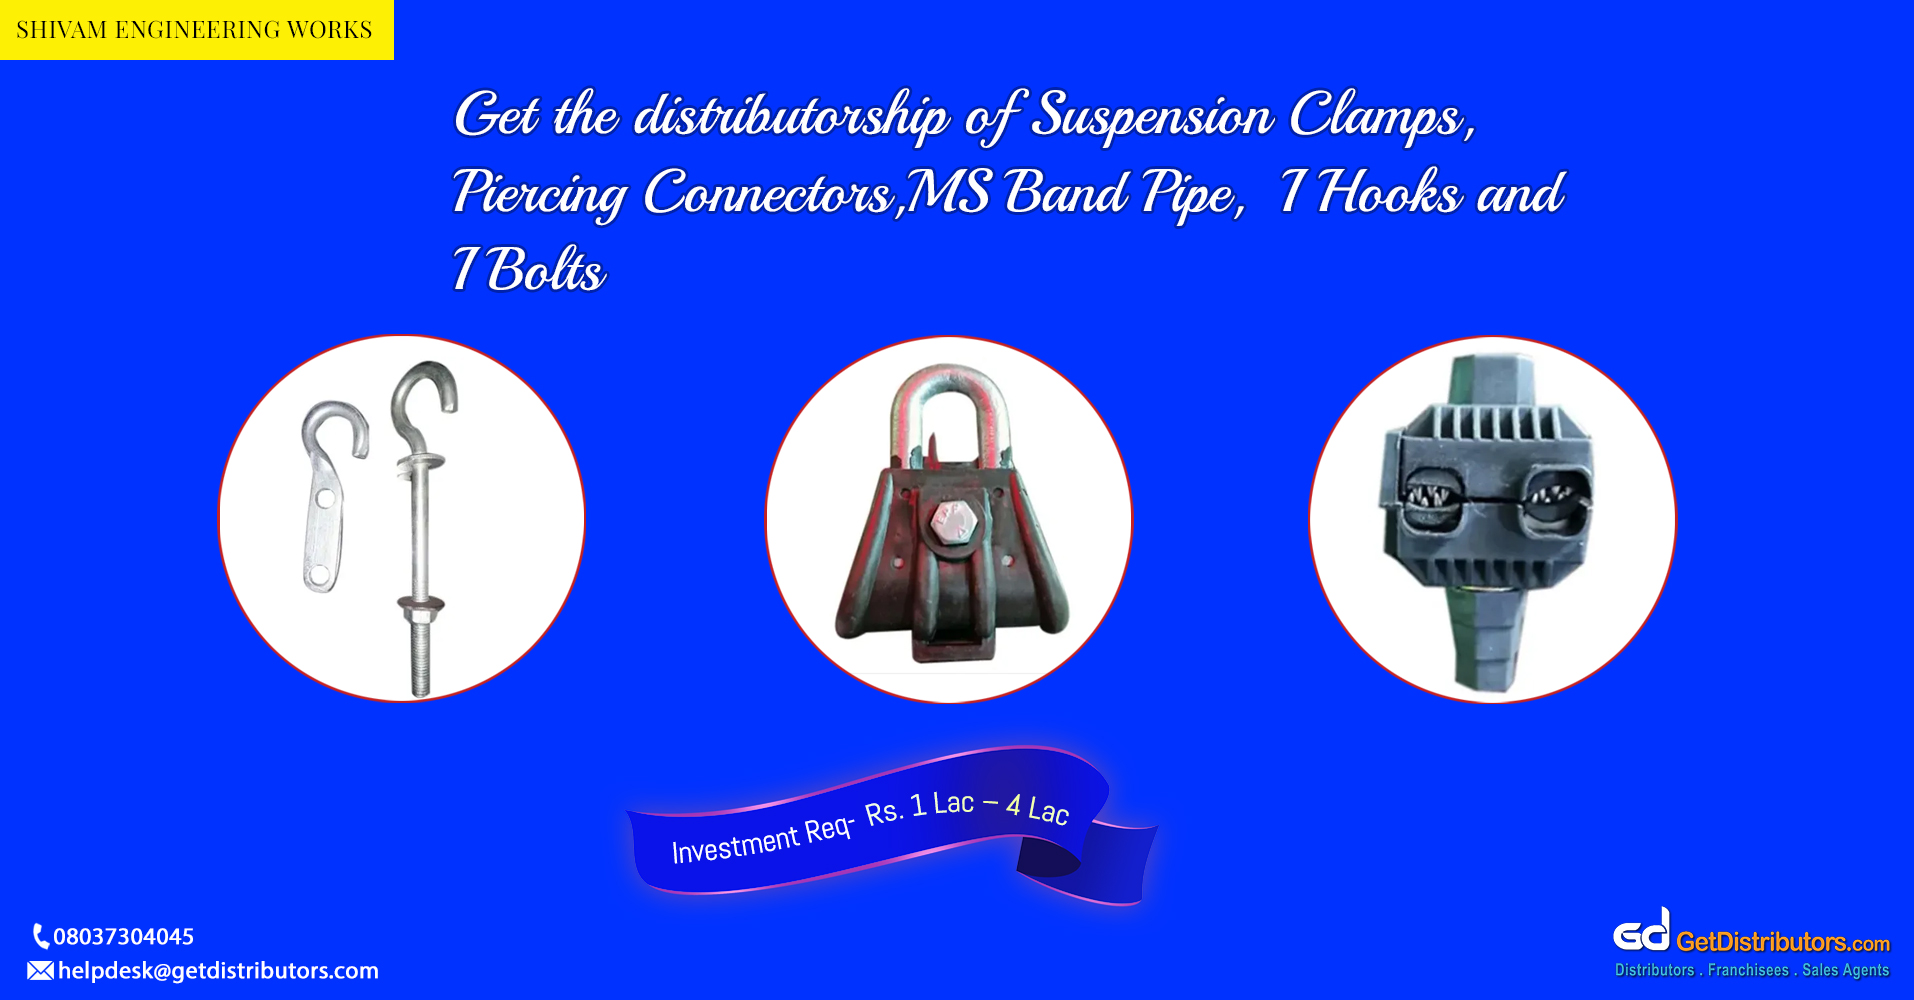 Distributorship of clamps, clips, bolts, and other items